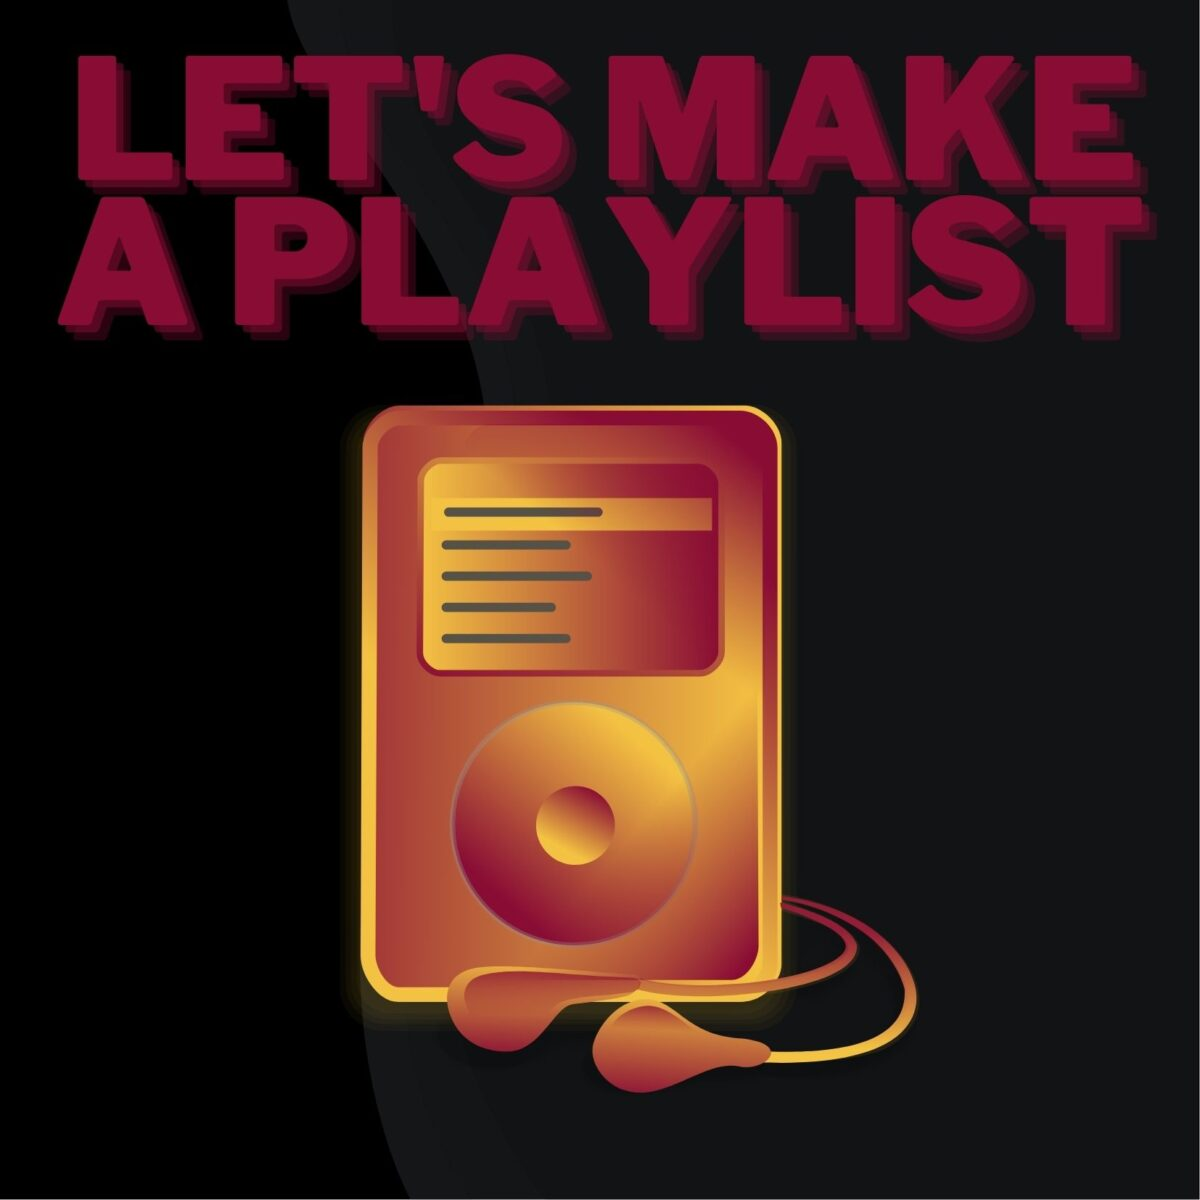 """Red and Yellow Ipod in the foreground, plain black background. Red text that says """"Let's make a playlist"""""""